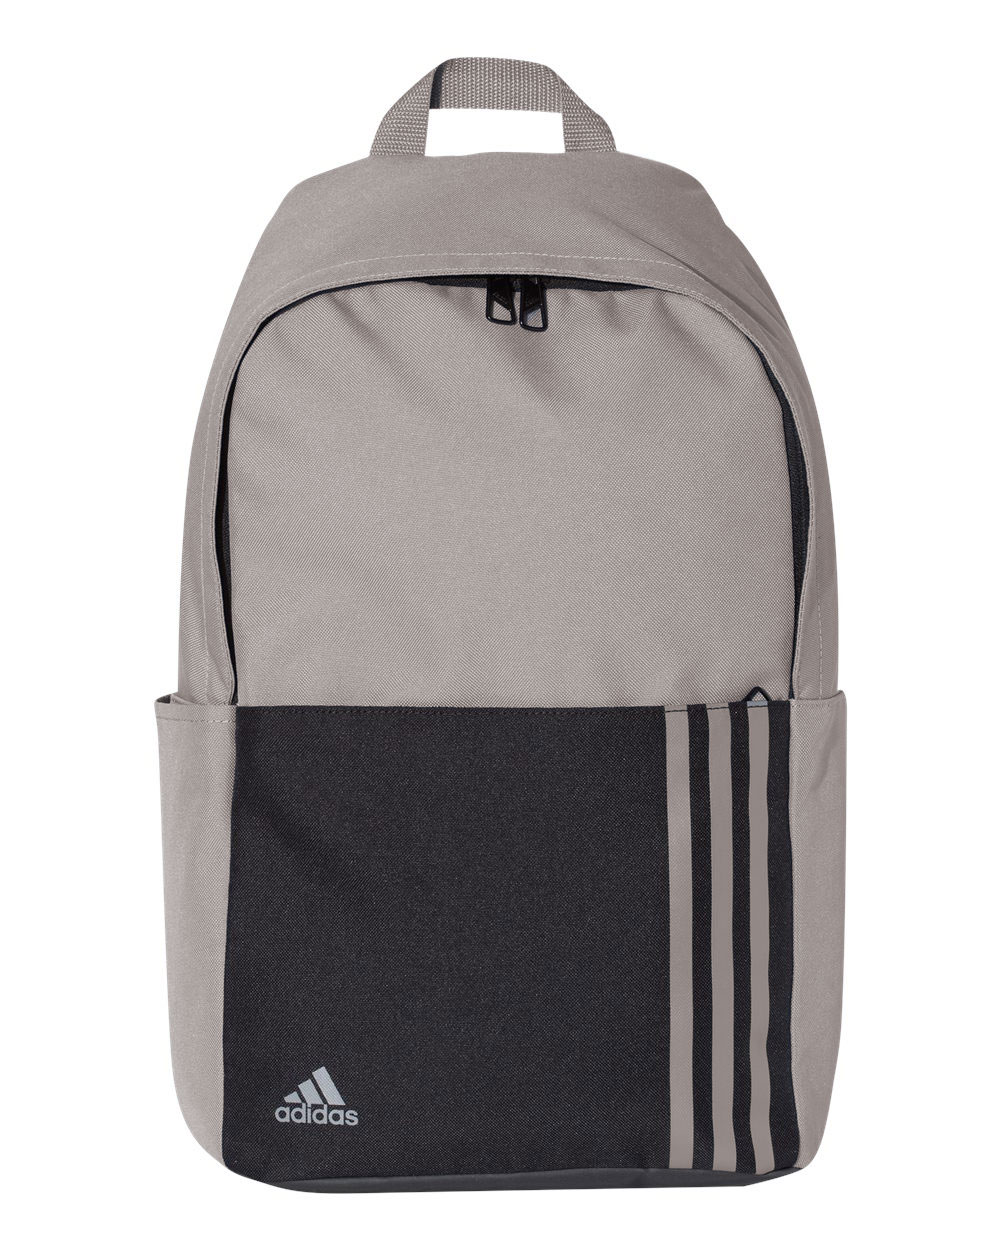 Adidas 18L 3-Stripes Backpack